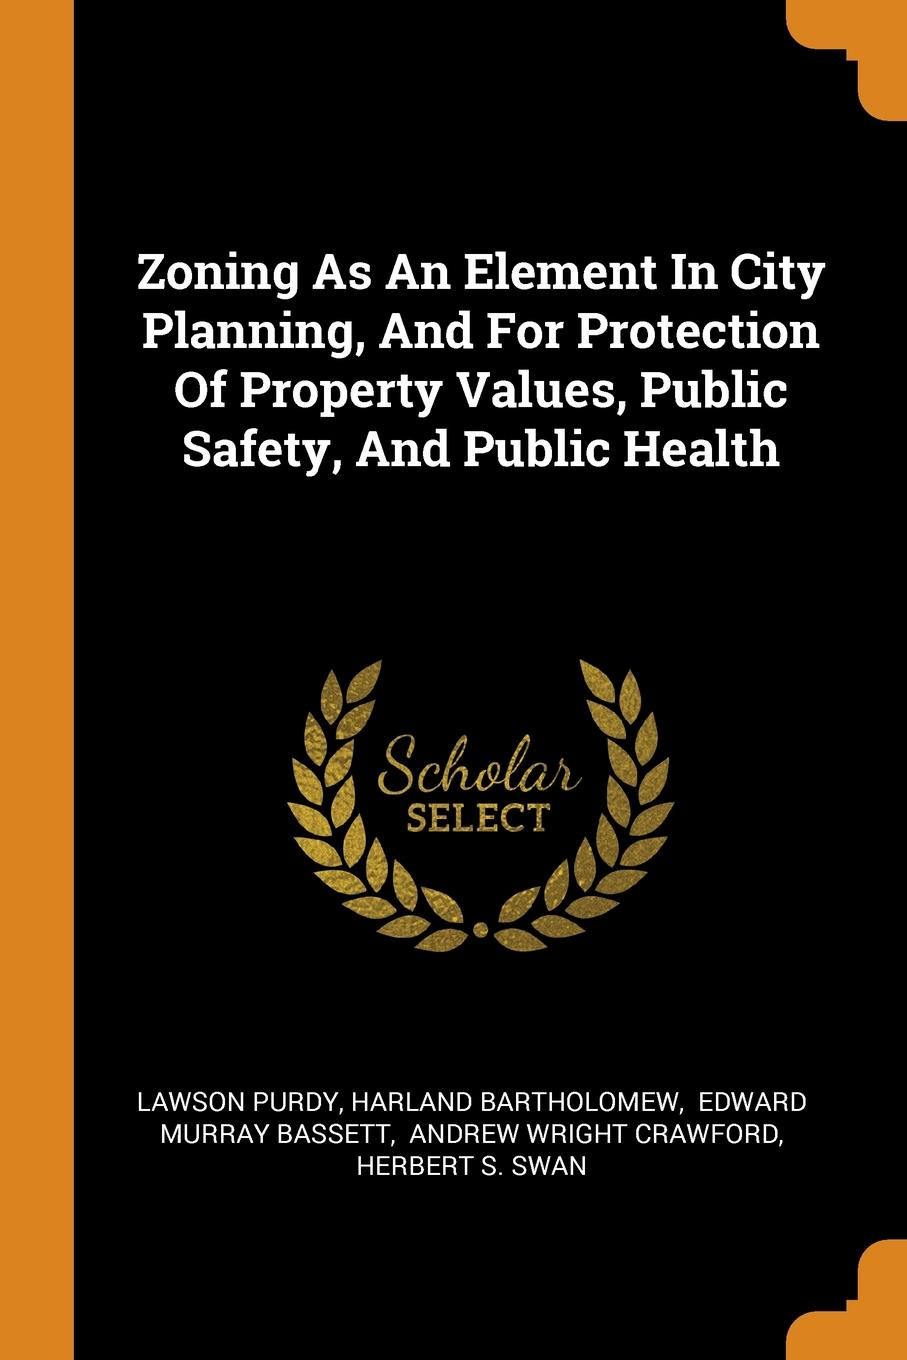 Lawson Purdy, Harland Bartholomew Zoning As An Element In City Planning, And For Protection Of Property Values, Public Safety, And Public Health